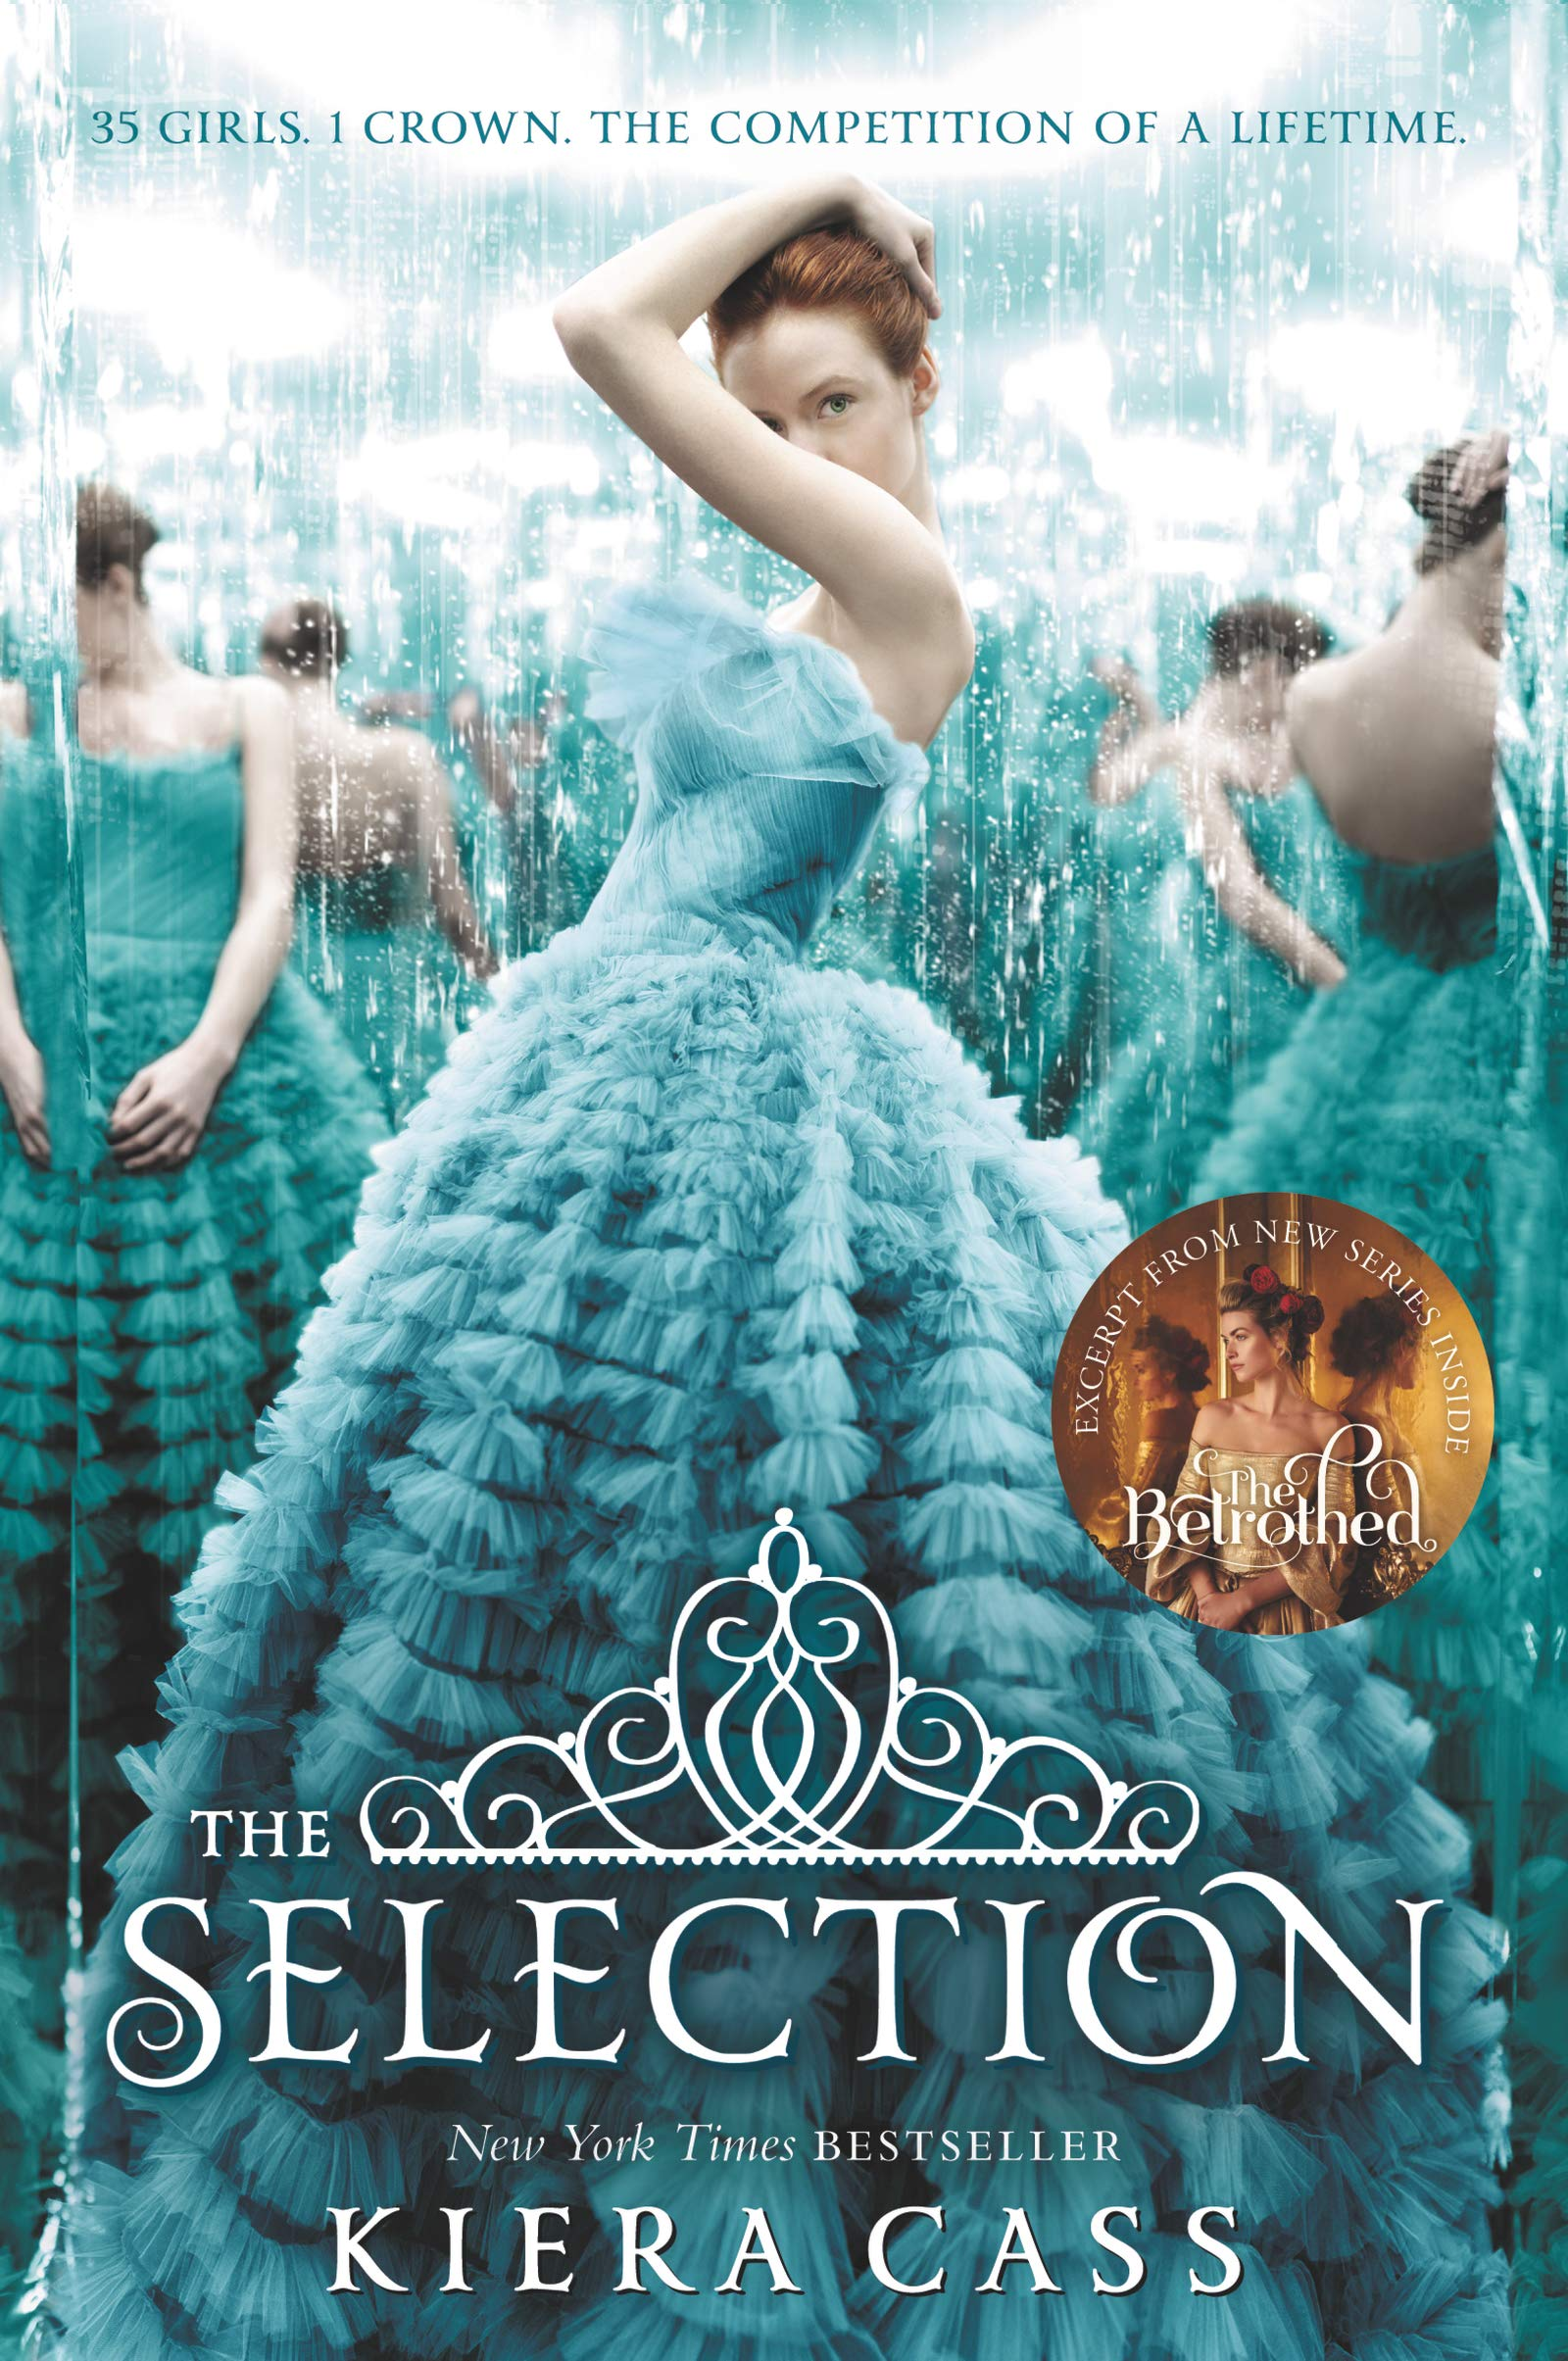 The Crown Kiera Cass Pdf Free Download English